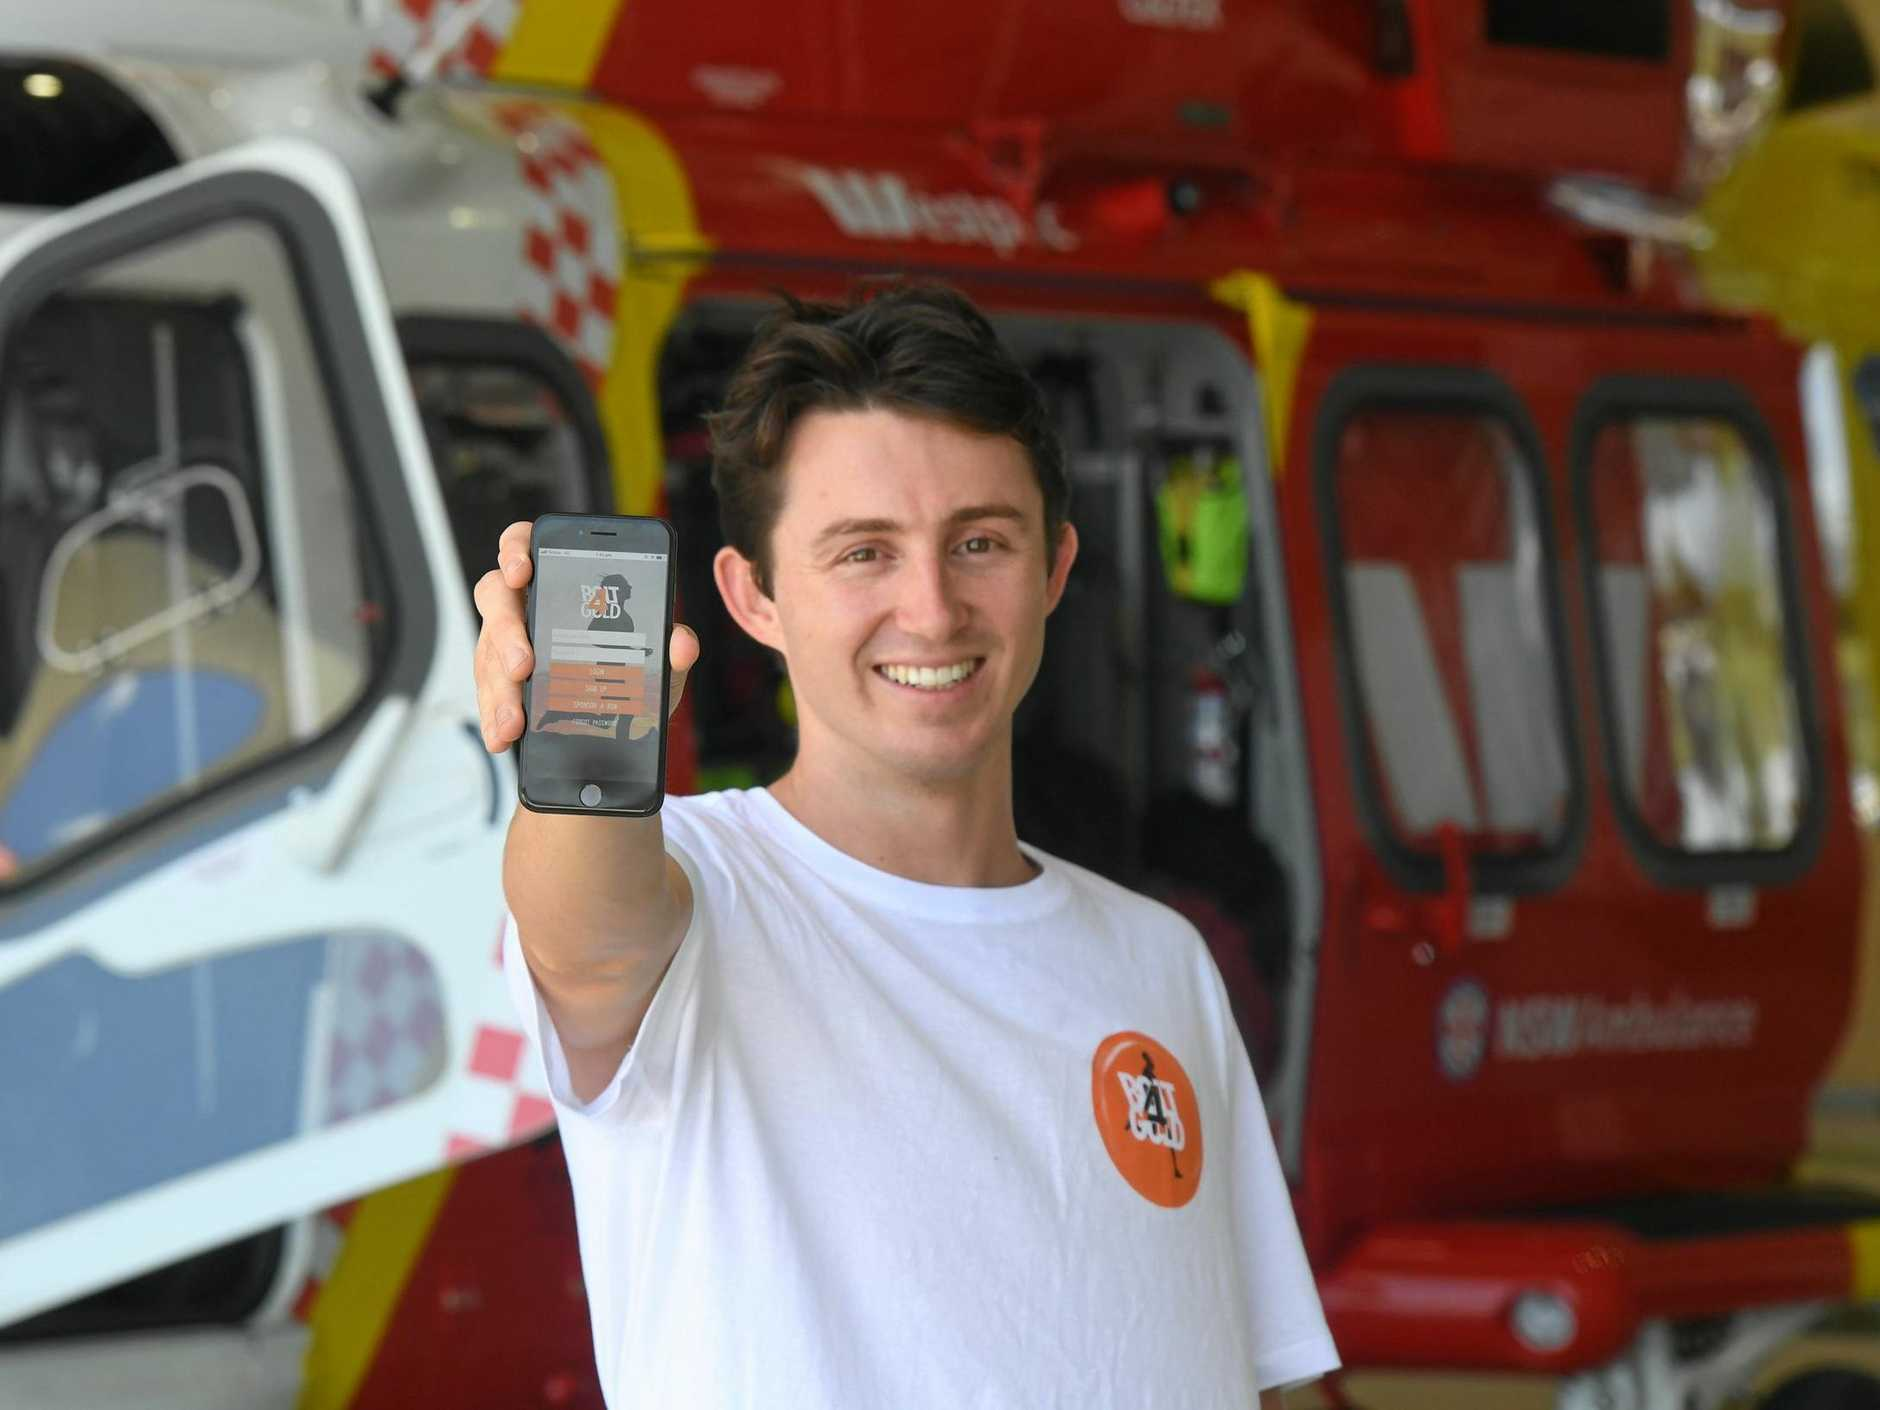 Alex Bowden has created an app where participants can race against their heroes and is using the app this Saturday to raise money for Westpac Rescue Helicopter.